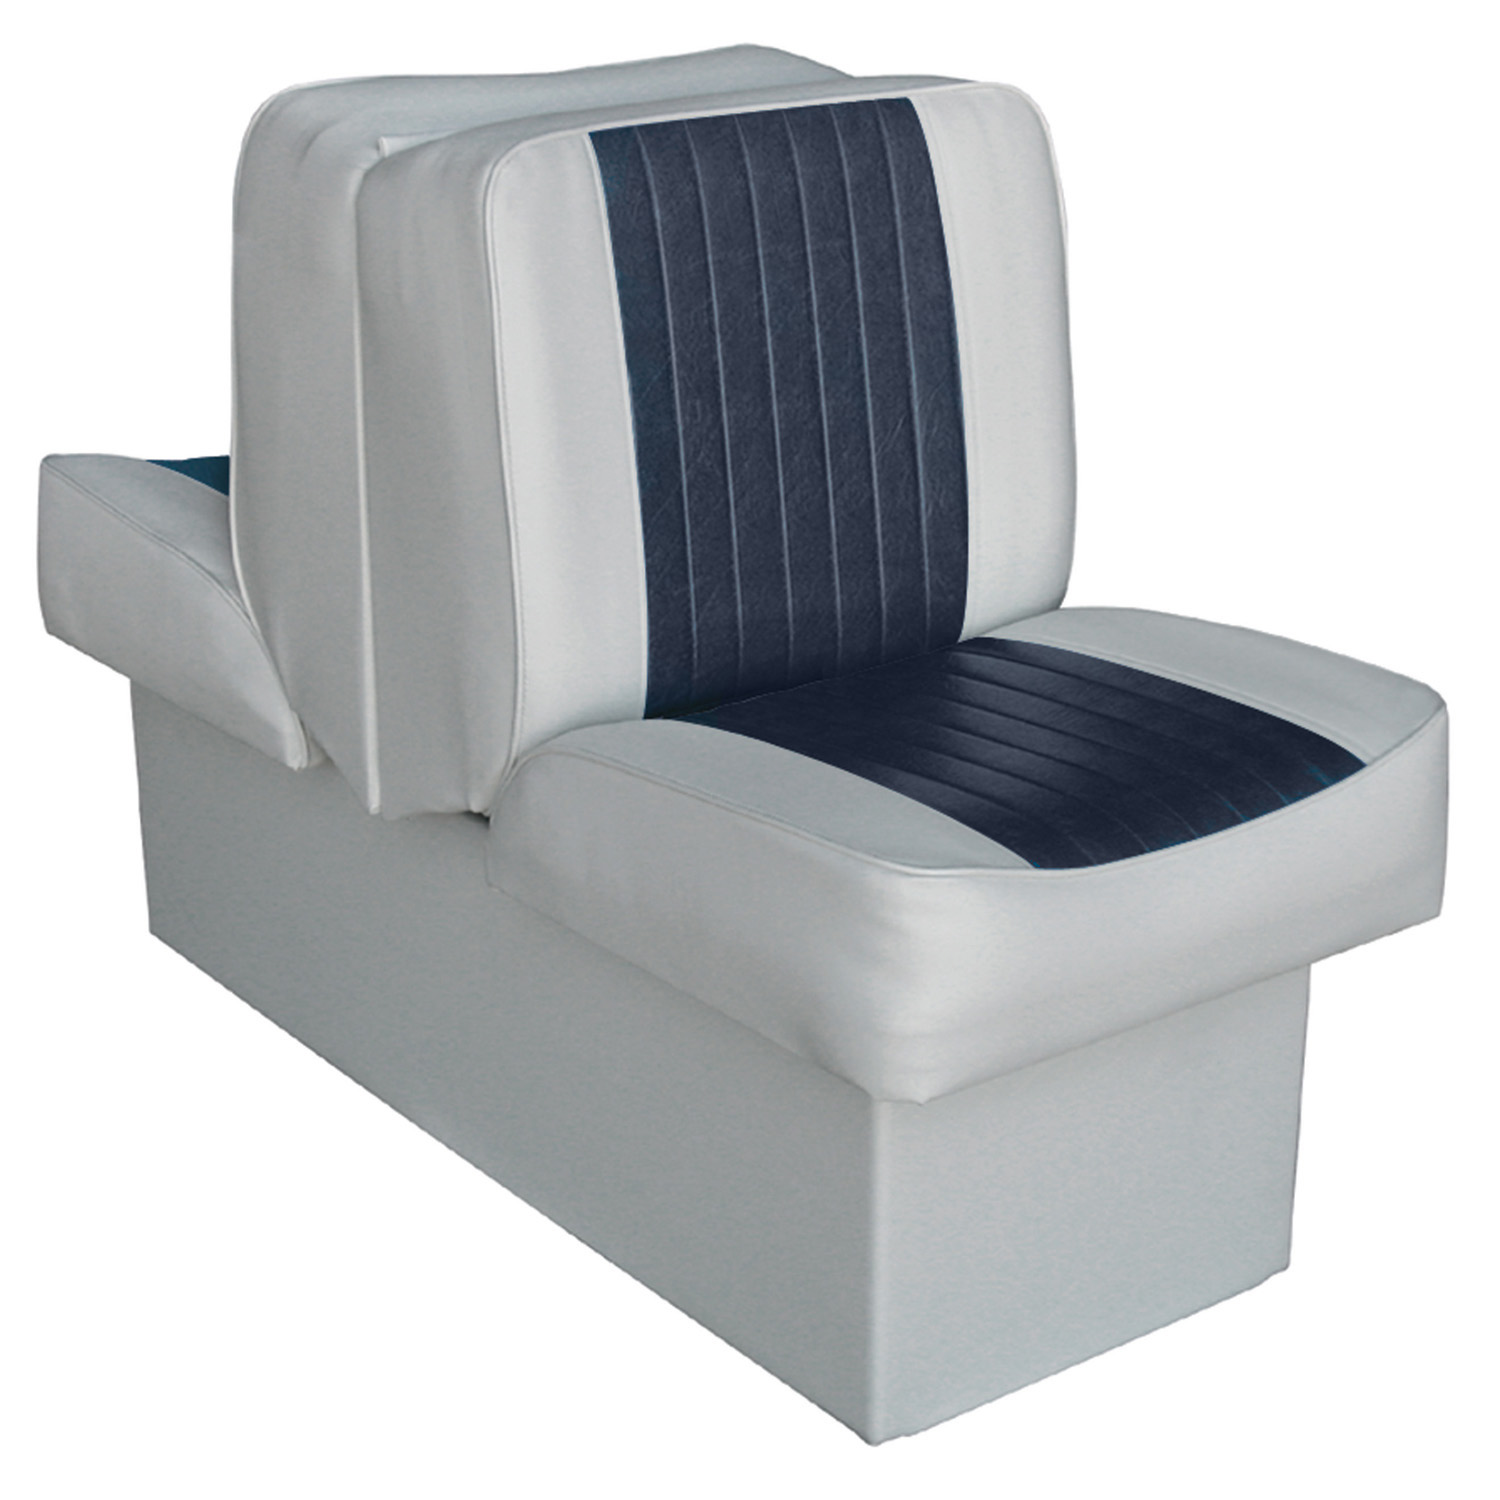 Wise 8WD707P-1-660 Deluxe Series Lounge Seat, Grey-Navy